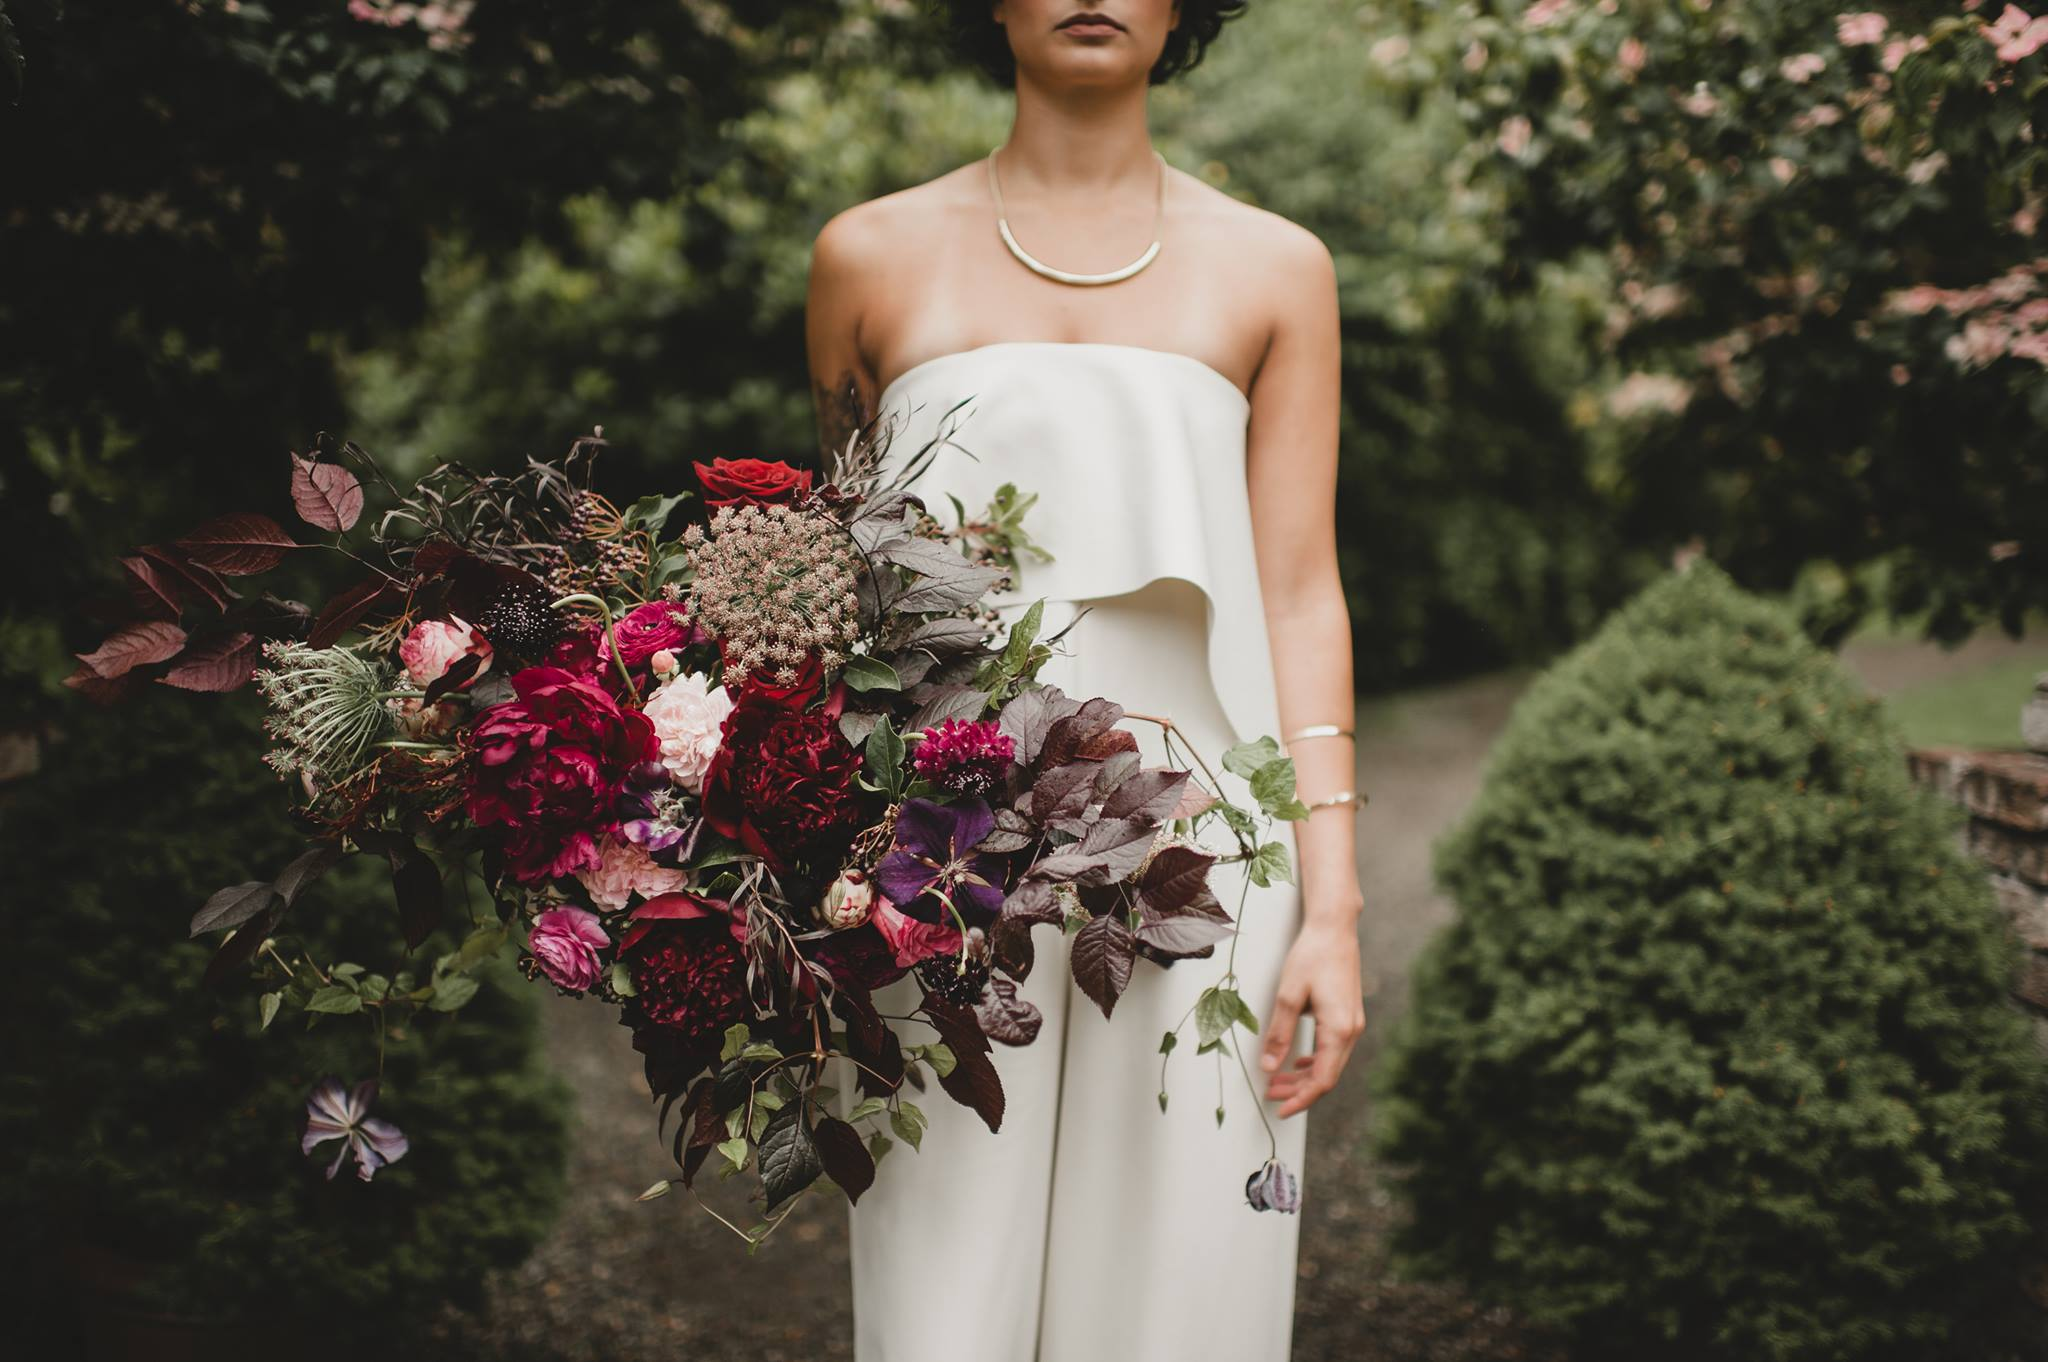 Freeform bridal bouquet of nigella and agonis foliage, burgundy peonies, Queen Anne's lace, clematis vines, garden roses, and scabiosa - bridal Bouquet Shapes by Flora Nova Design Seattle